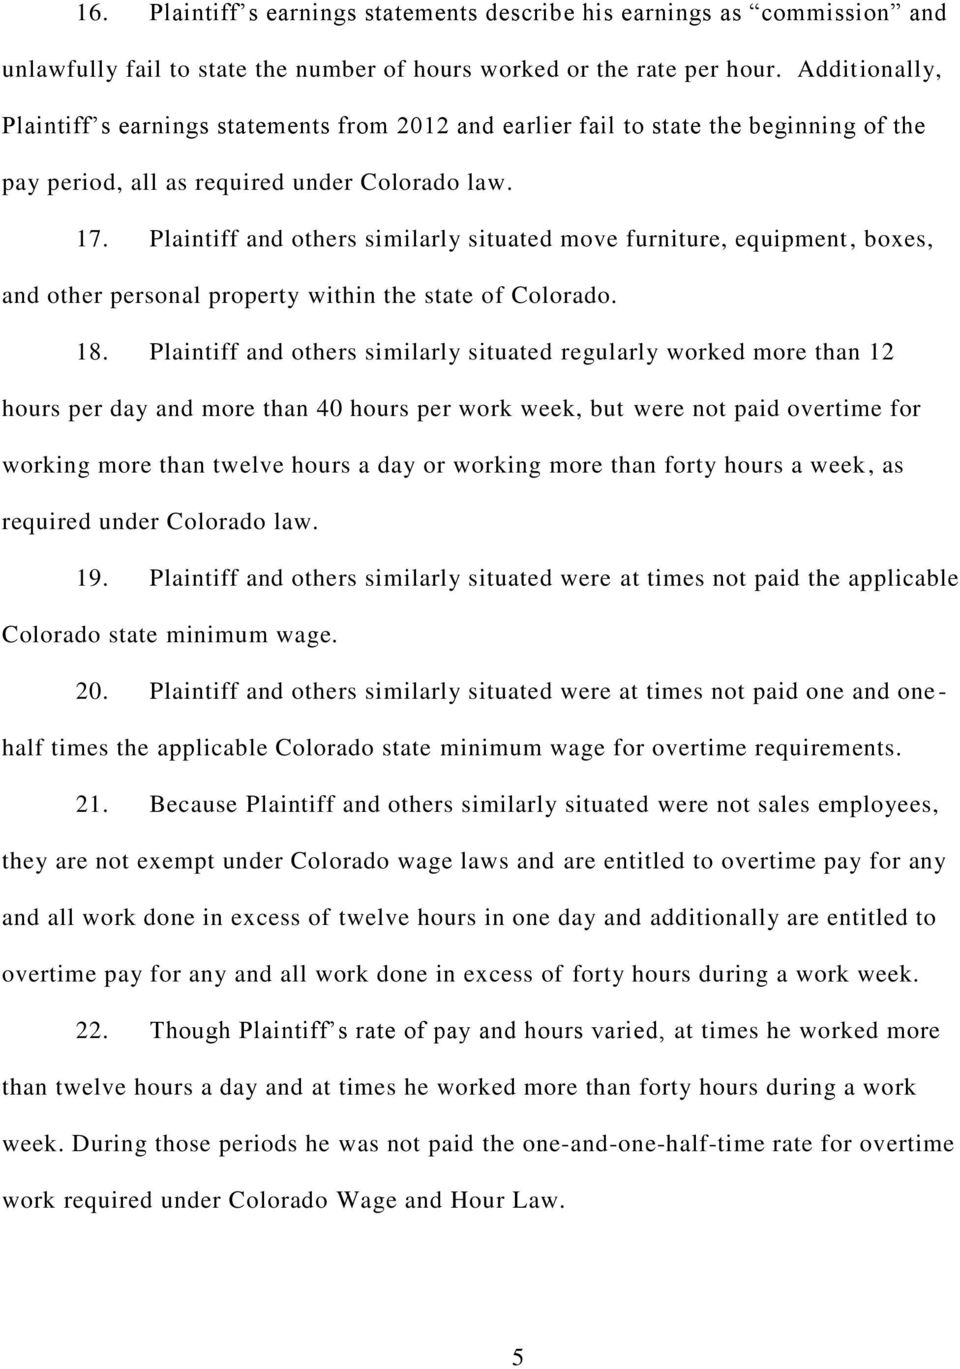 Plaintiff and others similarly situated move furniture, equipment, boxes, and other personal property within the state of Colorado. 18.